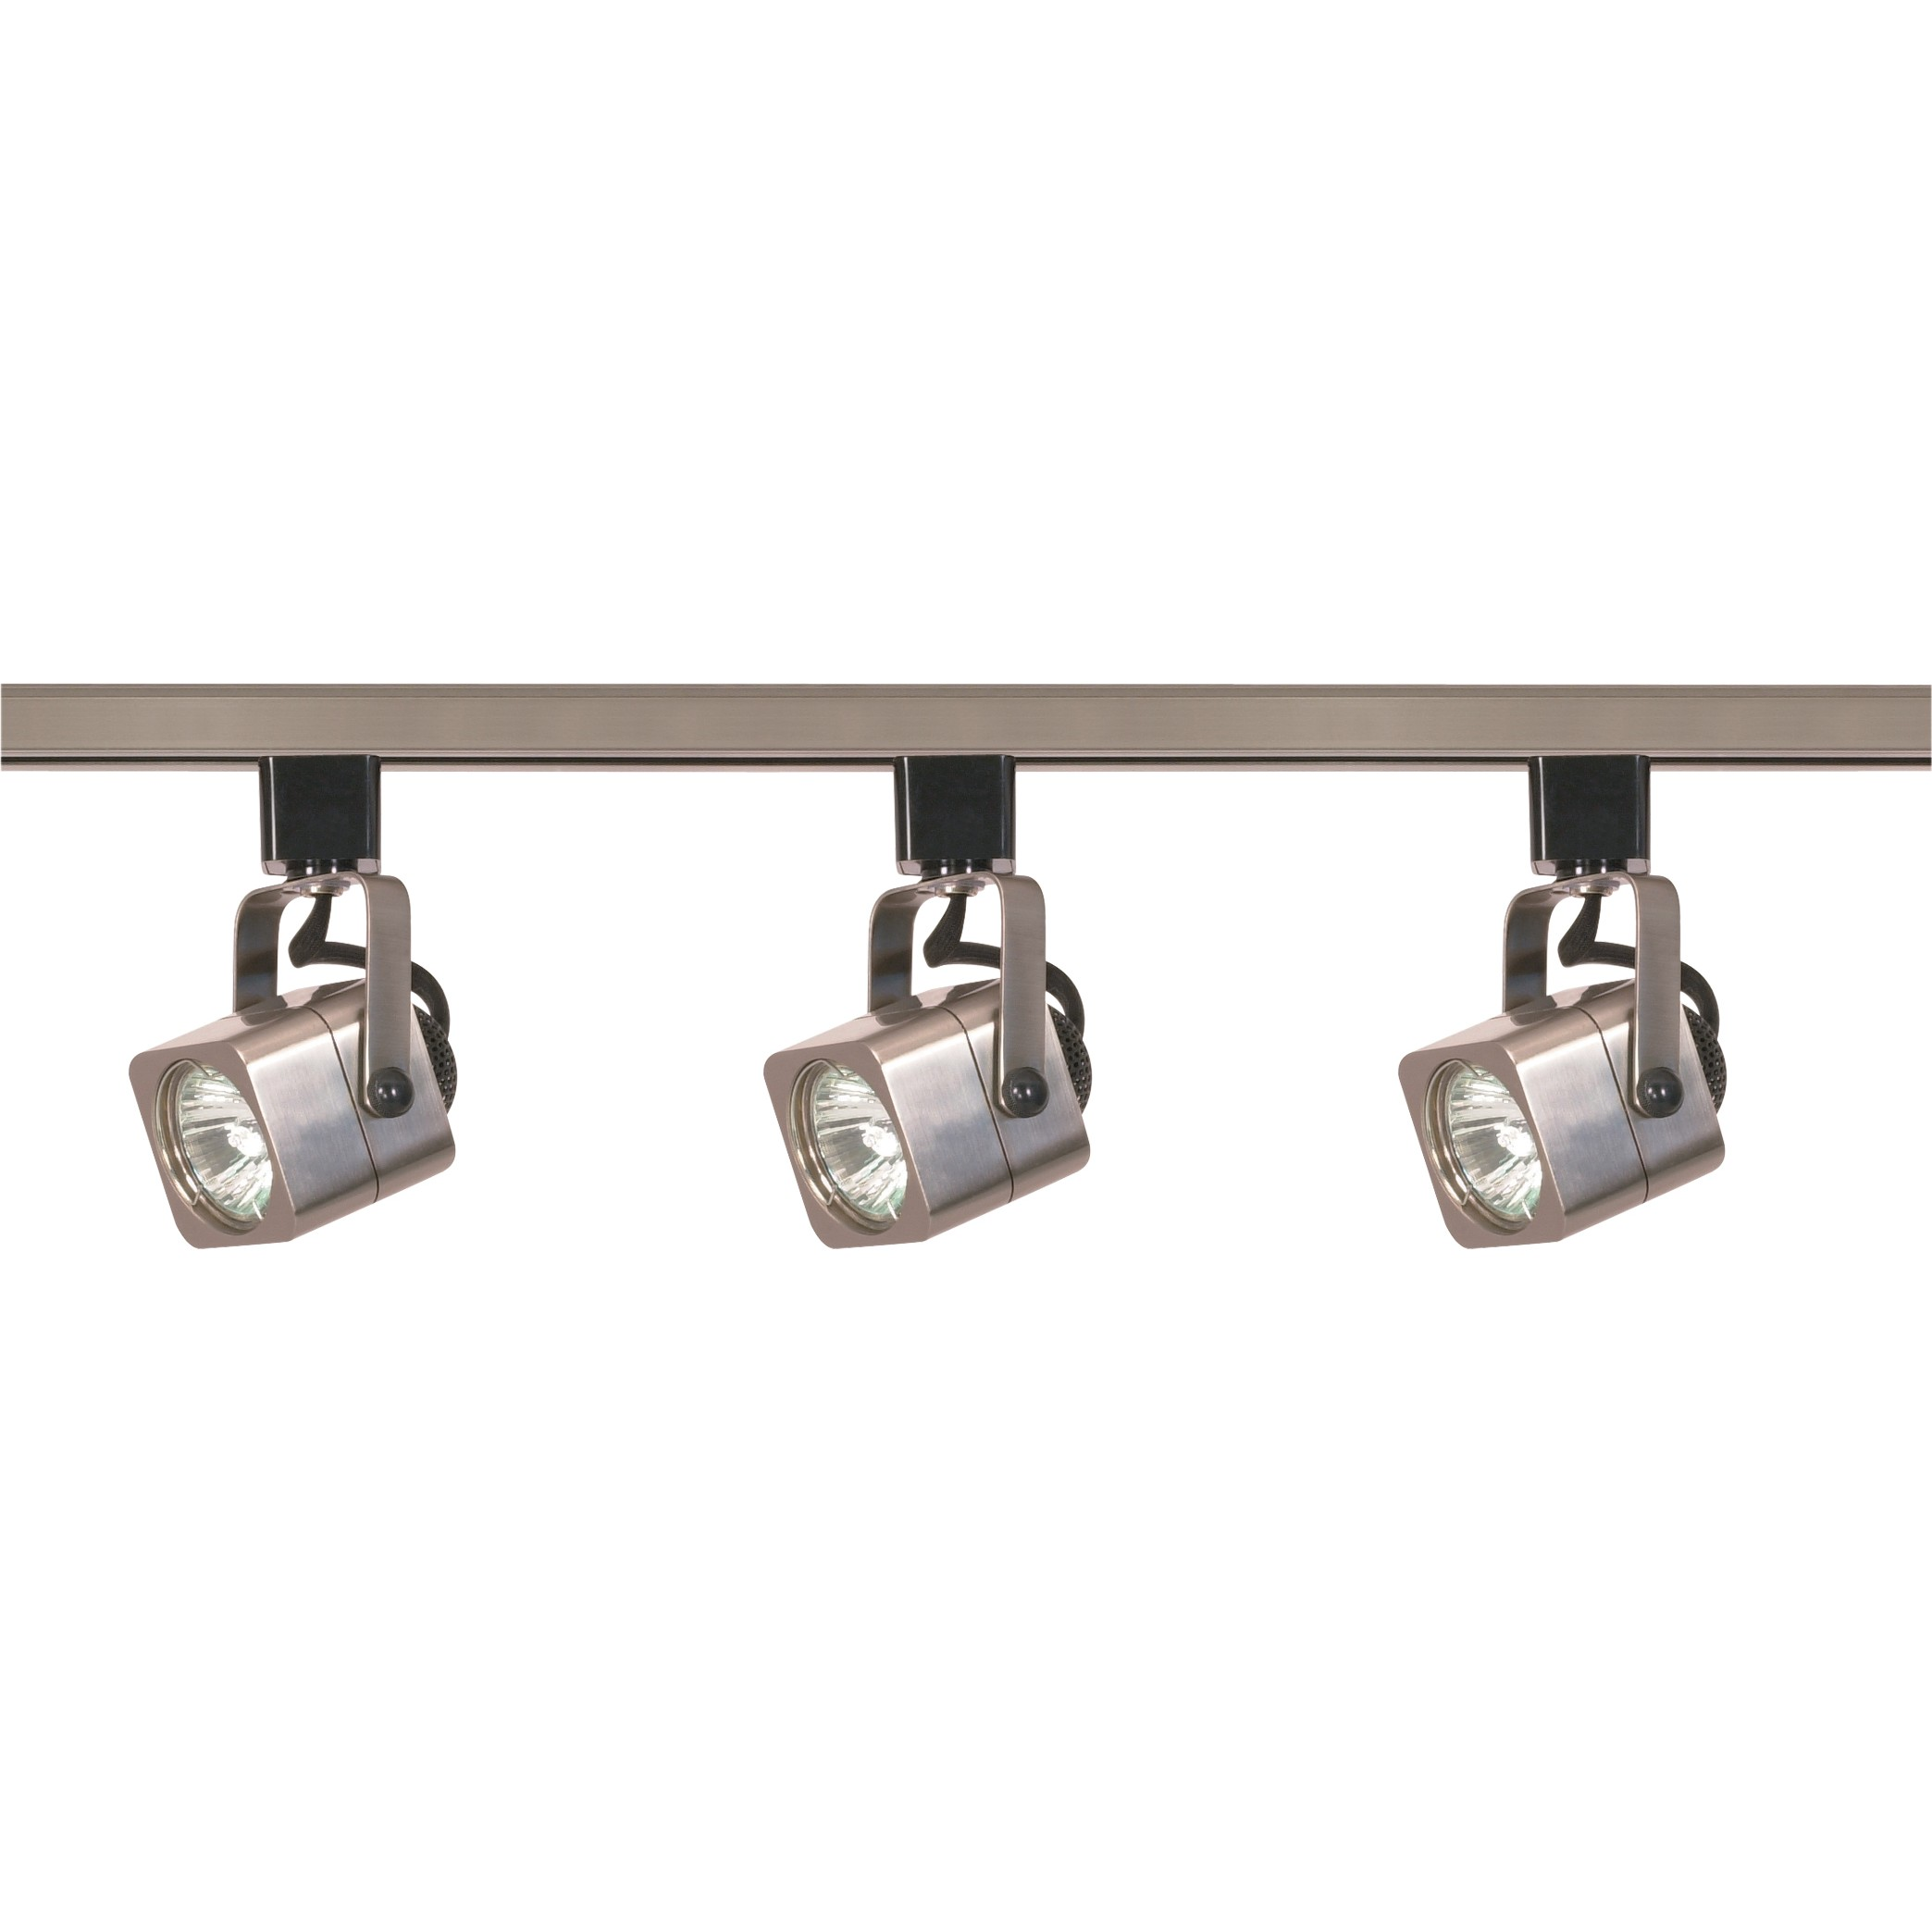 cozy nuvo lighting 3 Light MR16 Square Track Lighting Kit for home lighting ideas